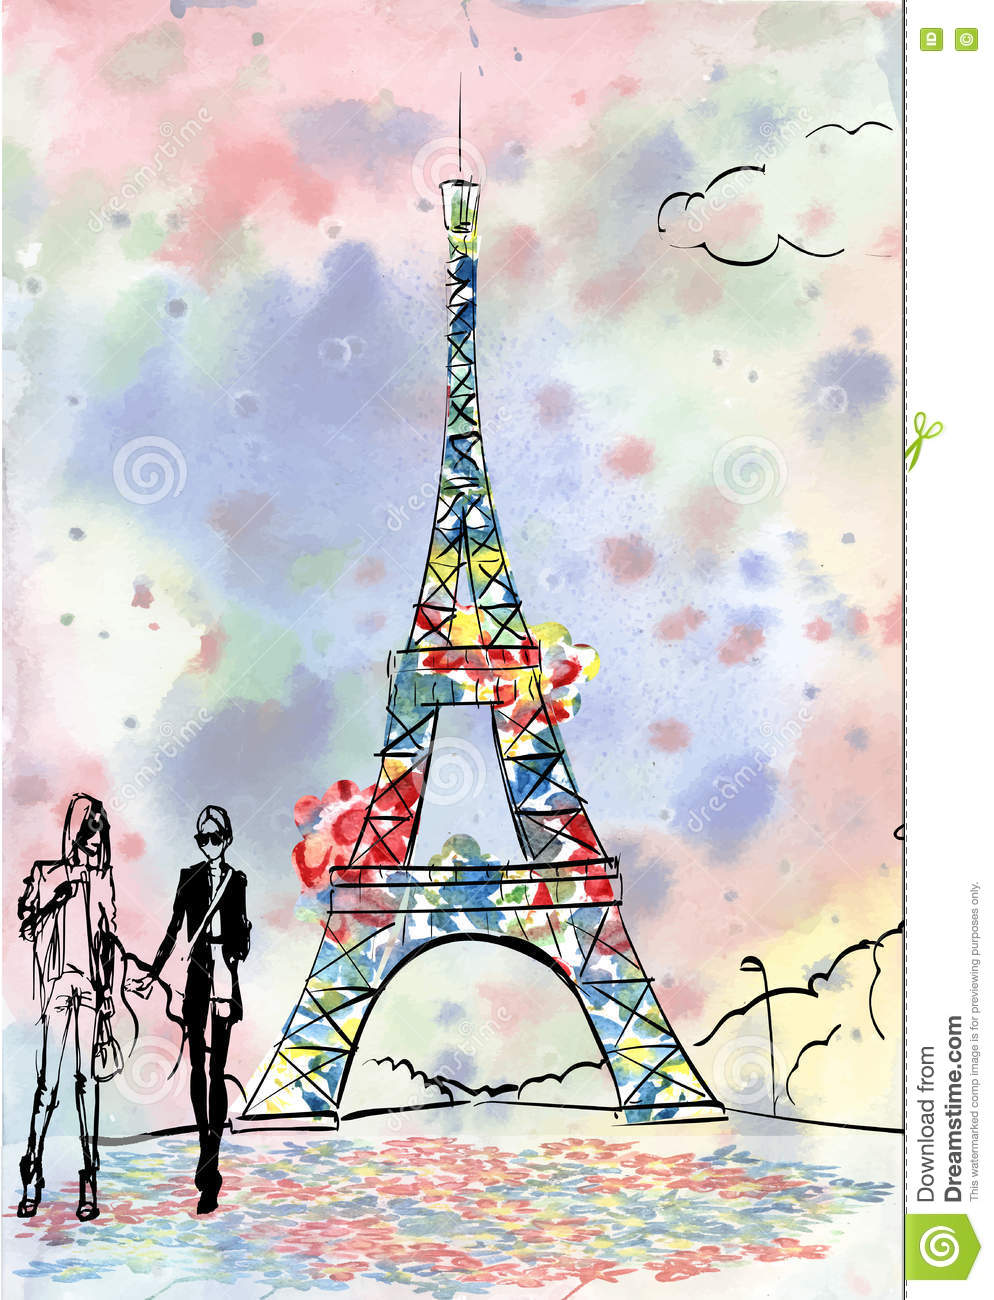 Exceptionnel Tour Eiffel Romantic Illustration Heart Frame Drawing Water Colo  BG13